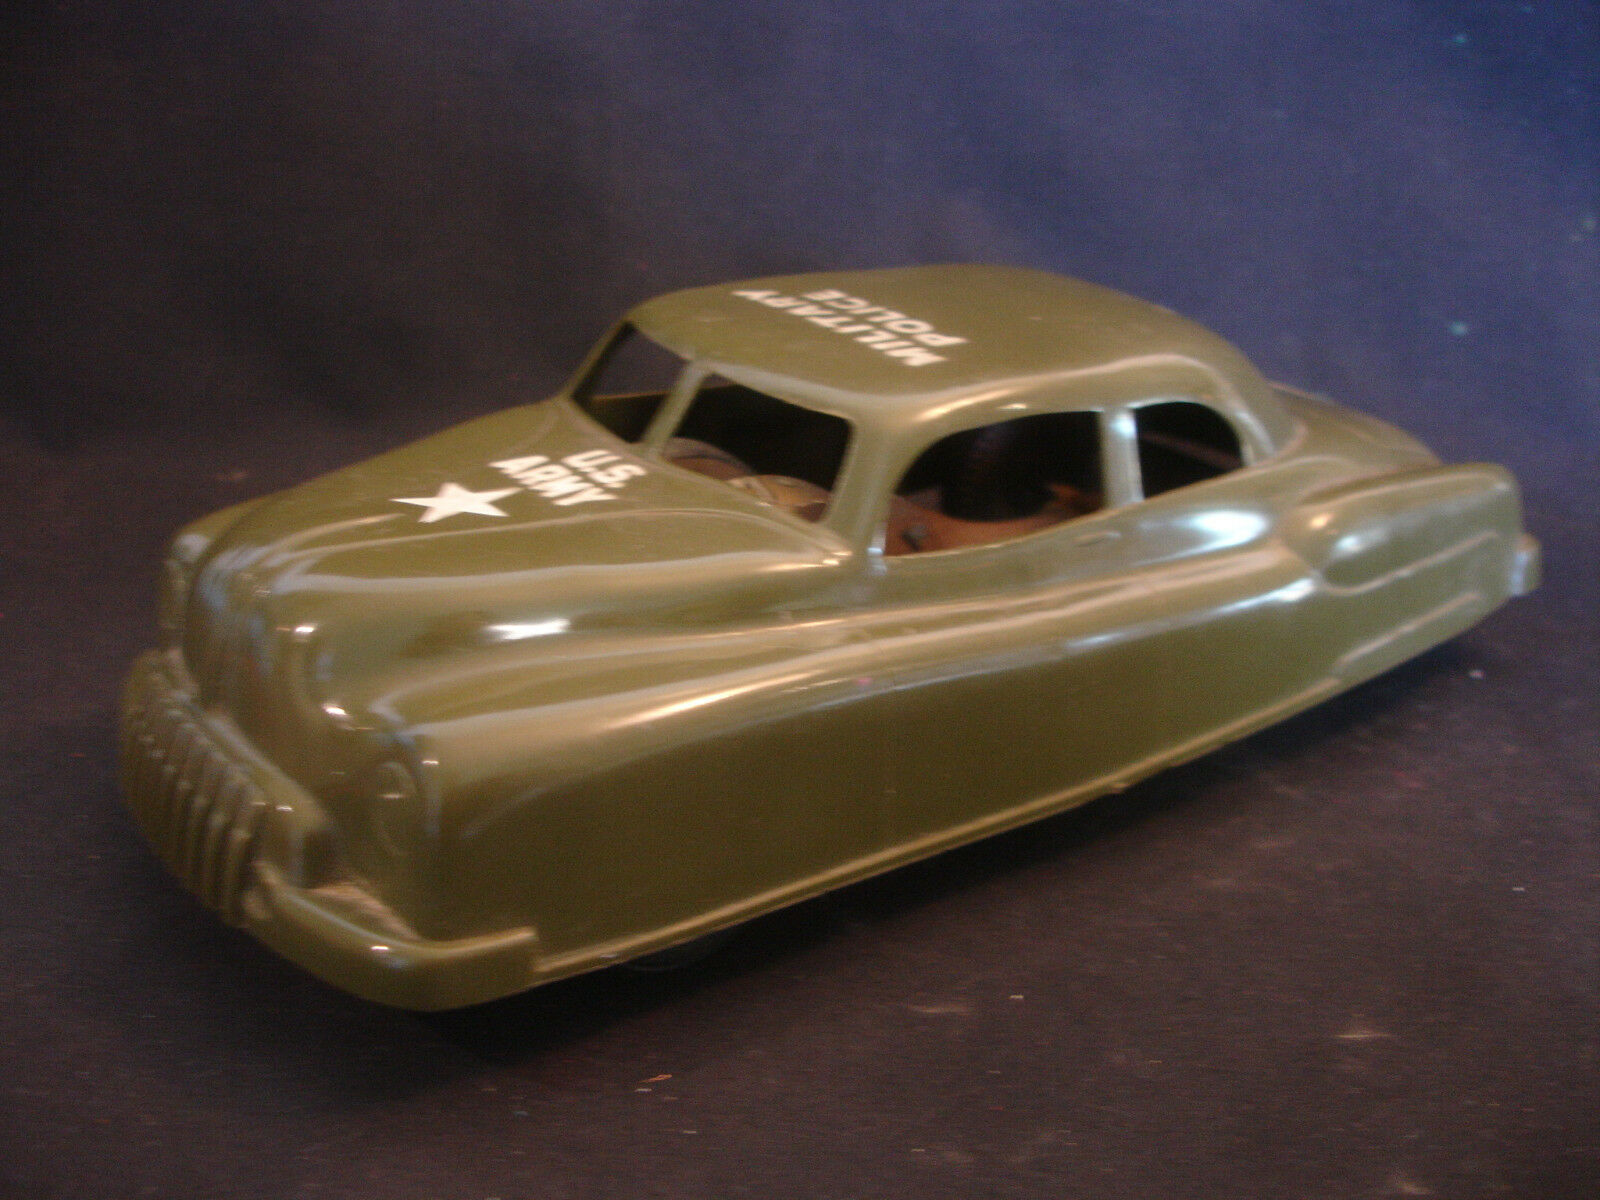 Old Vtg Friction Collectible Plastic Military Police U.S Army Toy Car LM14